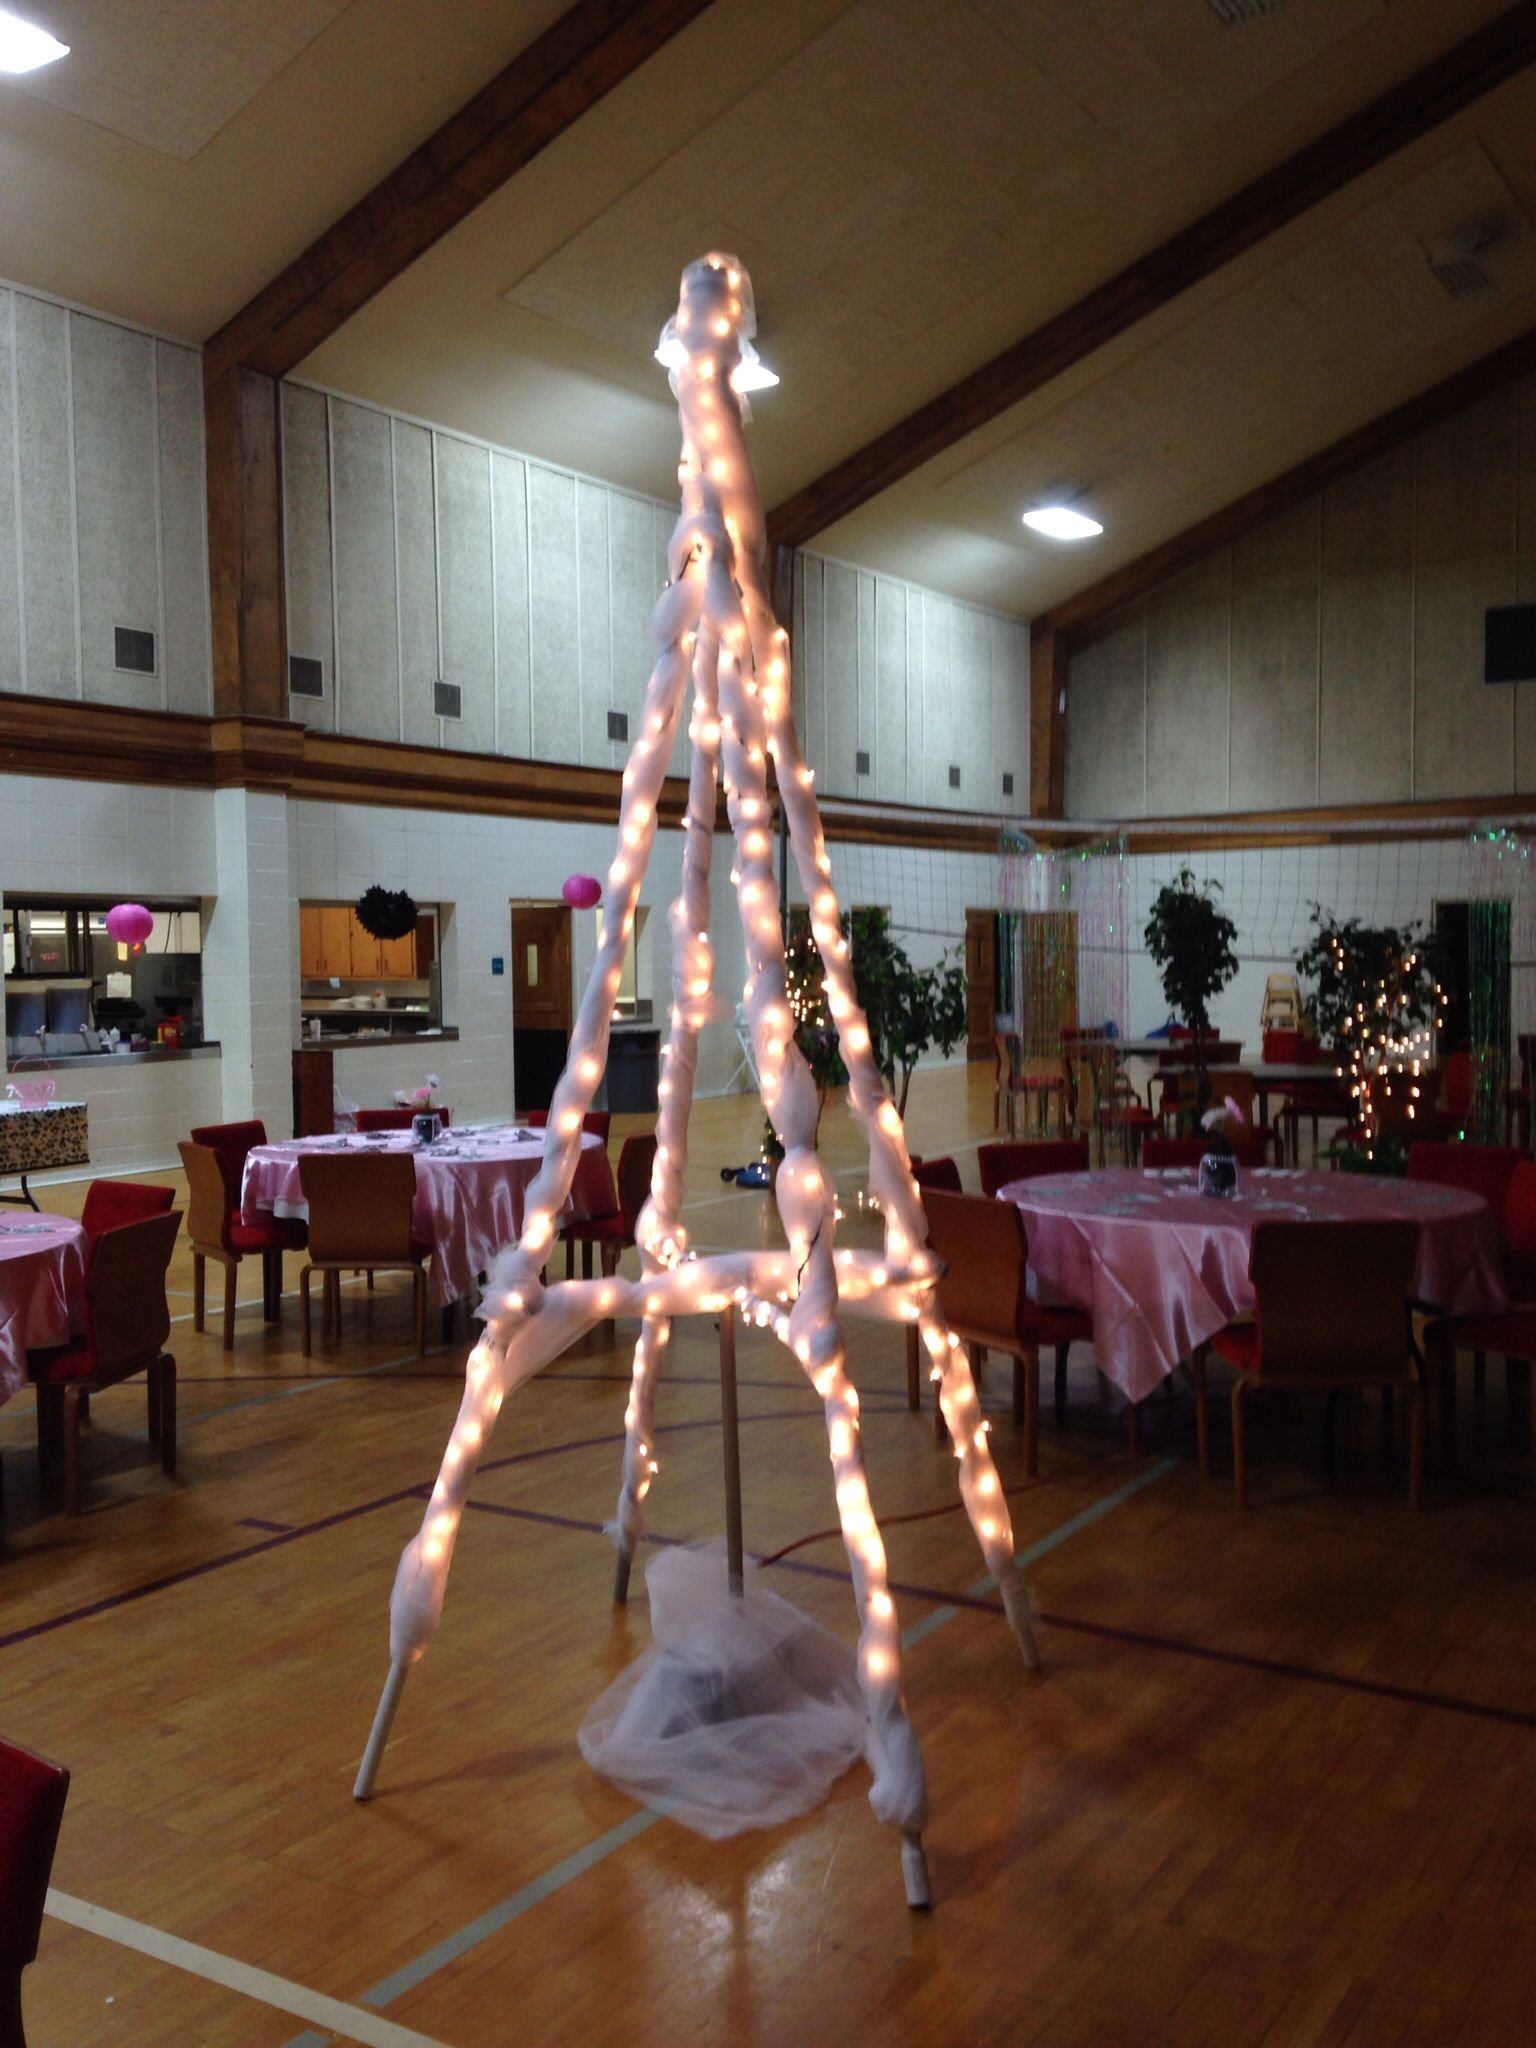 Make an Eiffel Tower out of 4 PVC pipes and duct tape Wrap in white